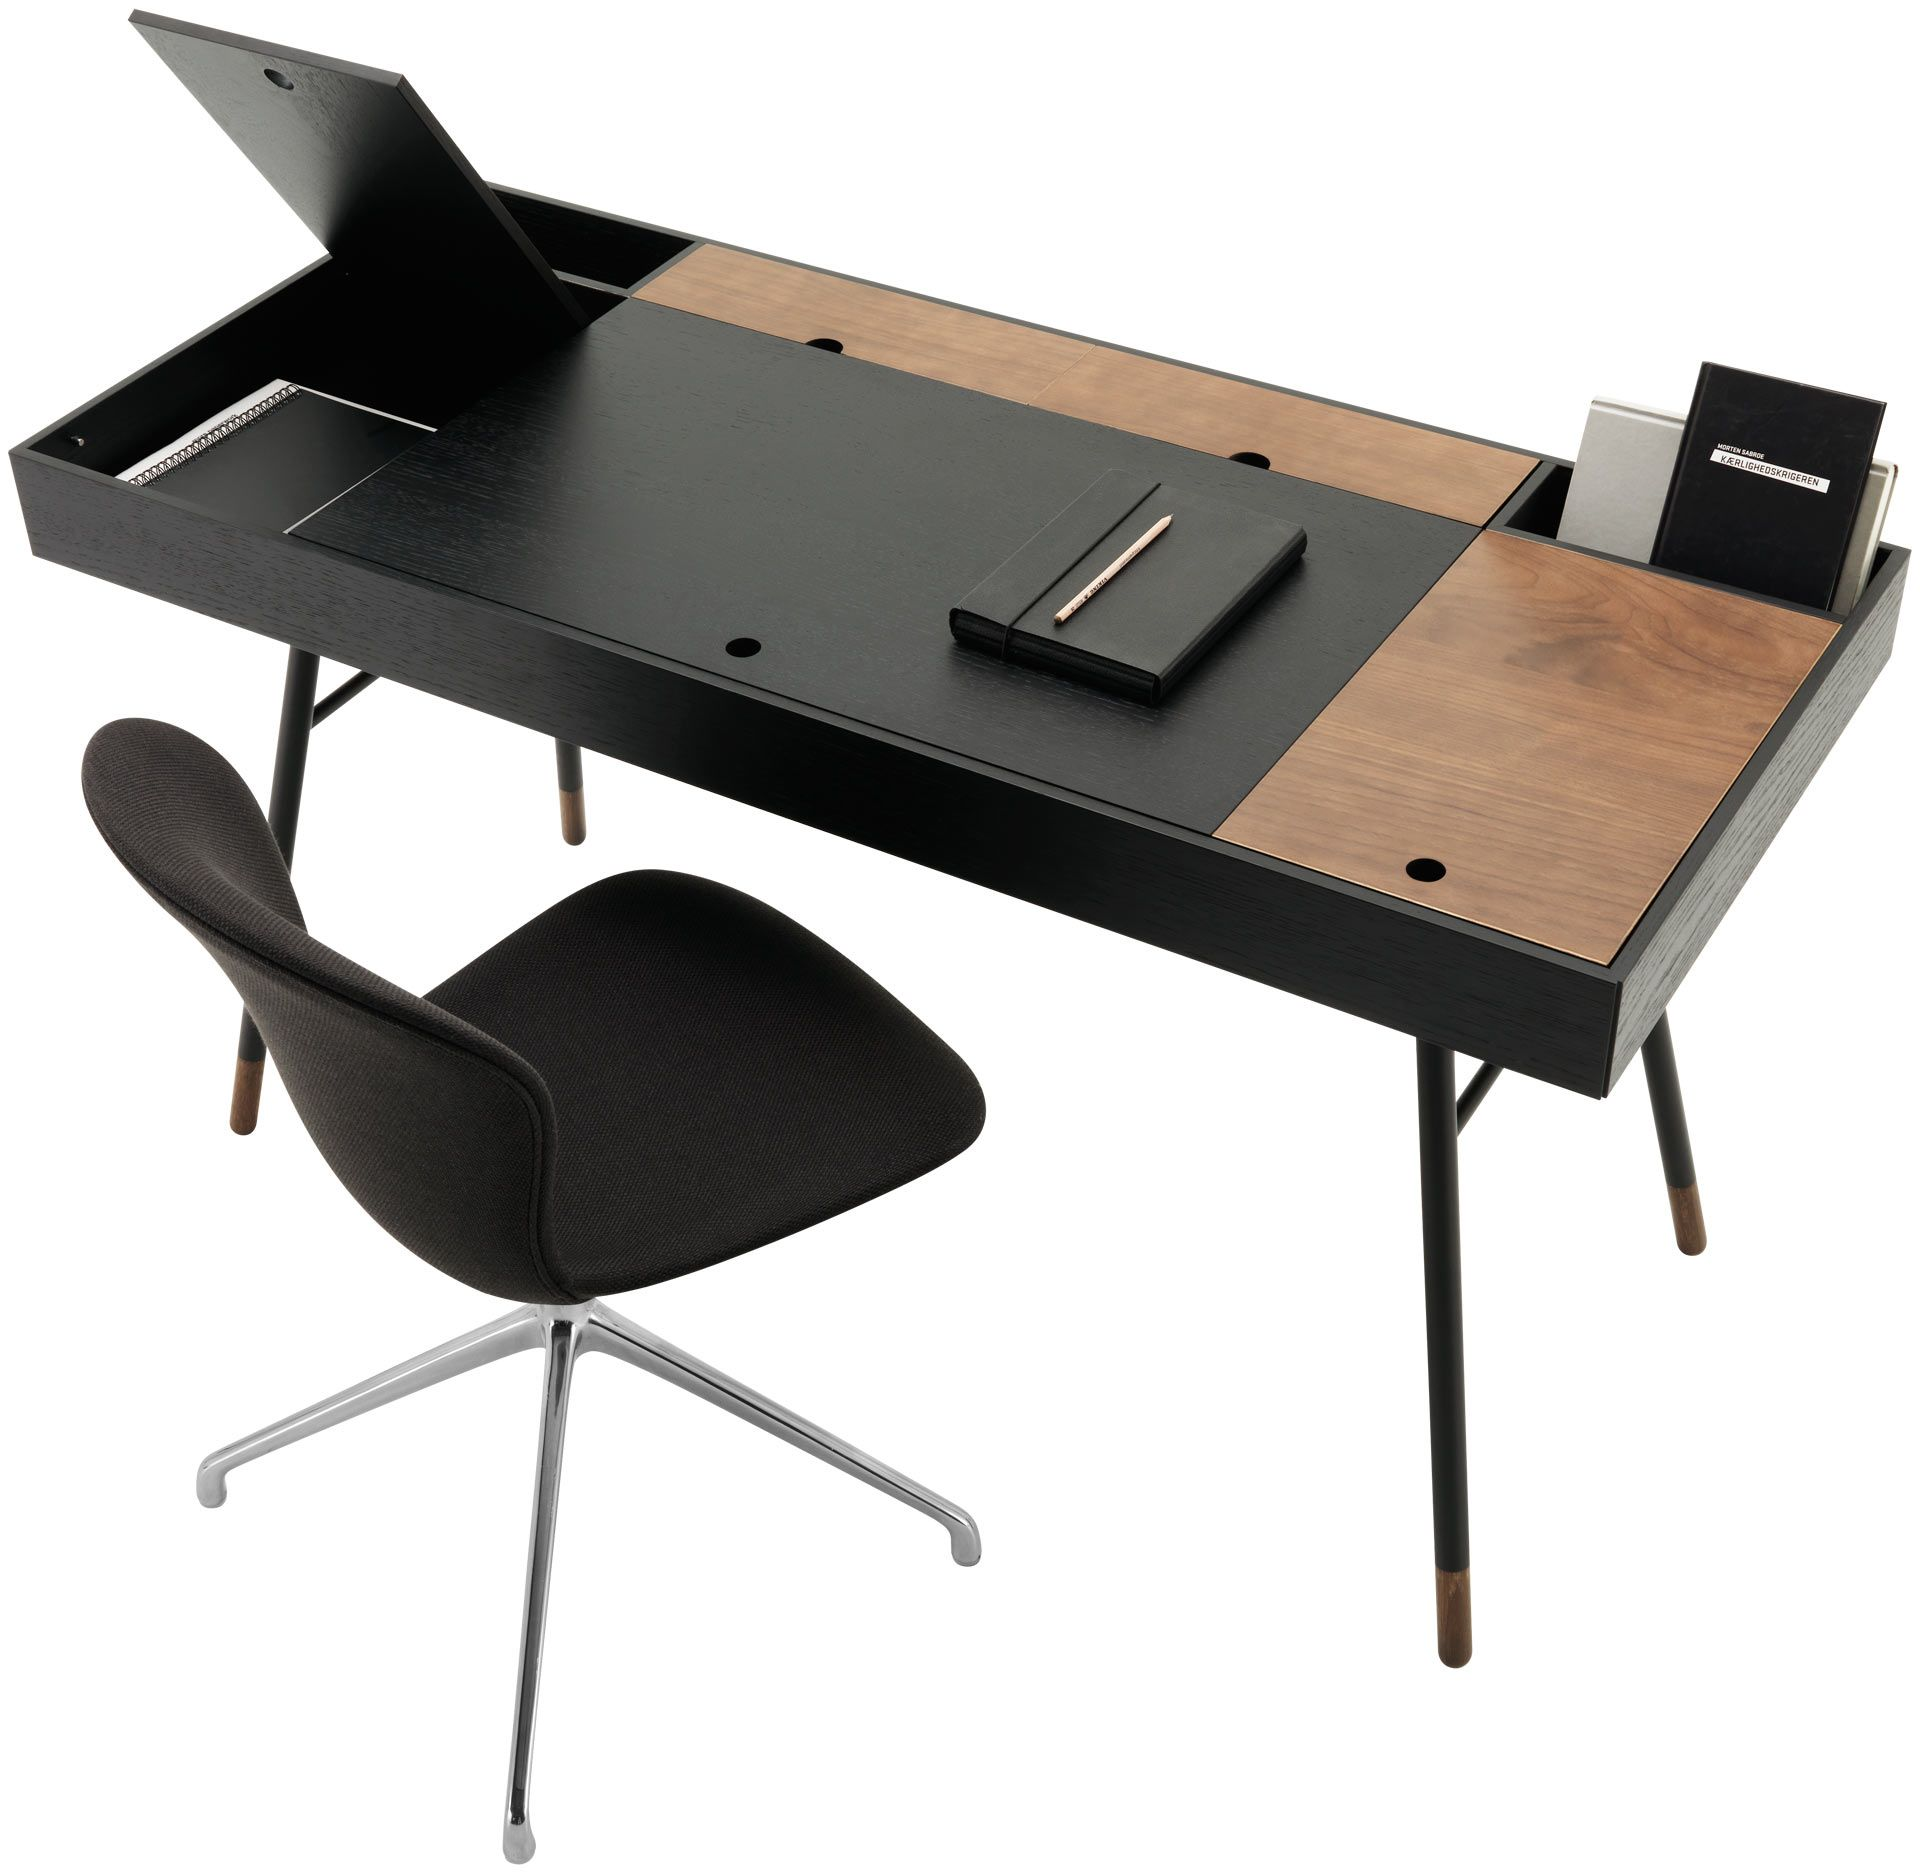 stylish office chairs uk ergonomic chair history furniture boconcept stores throughout